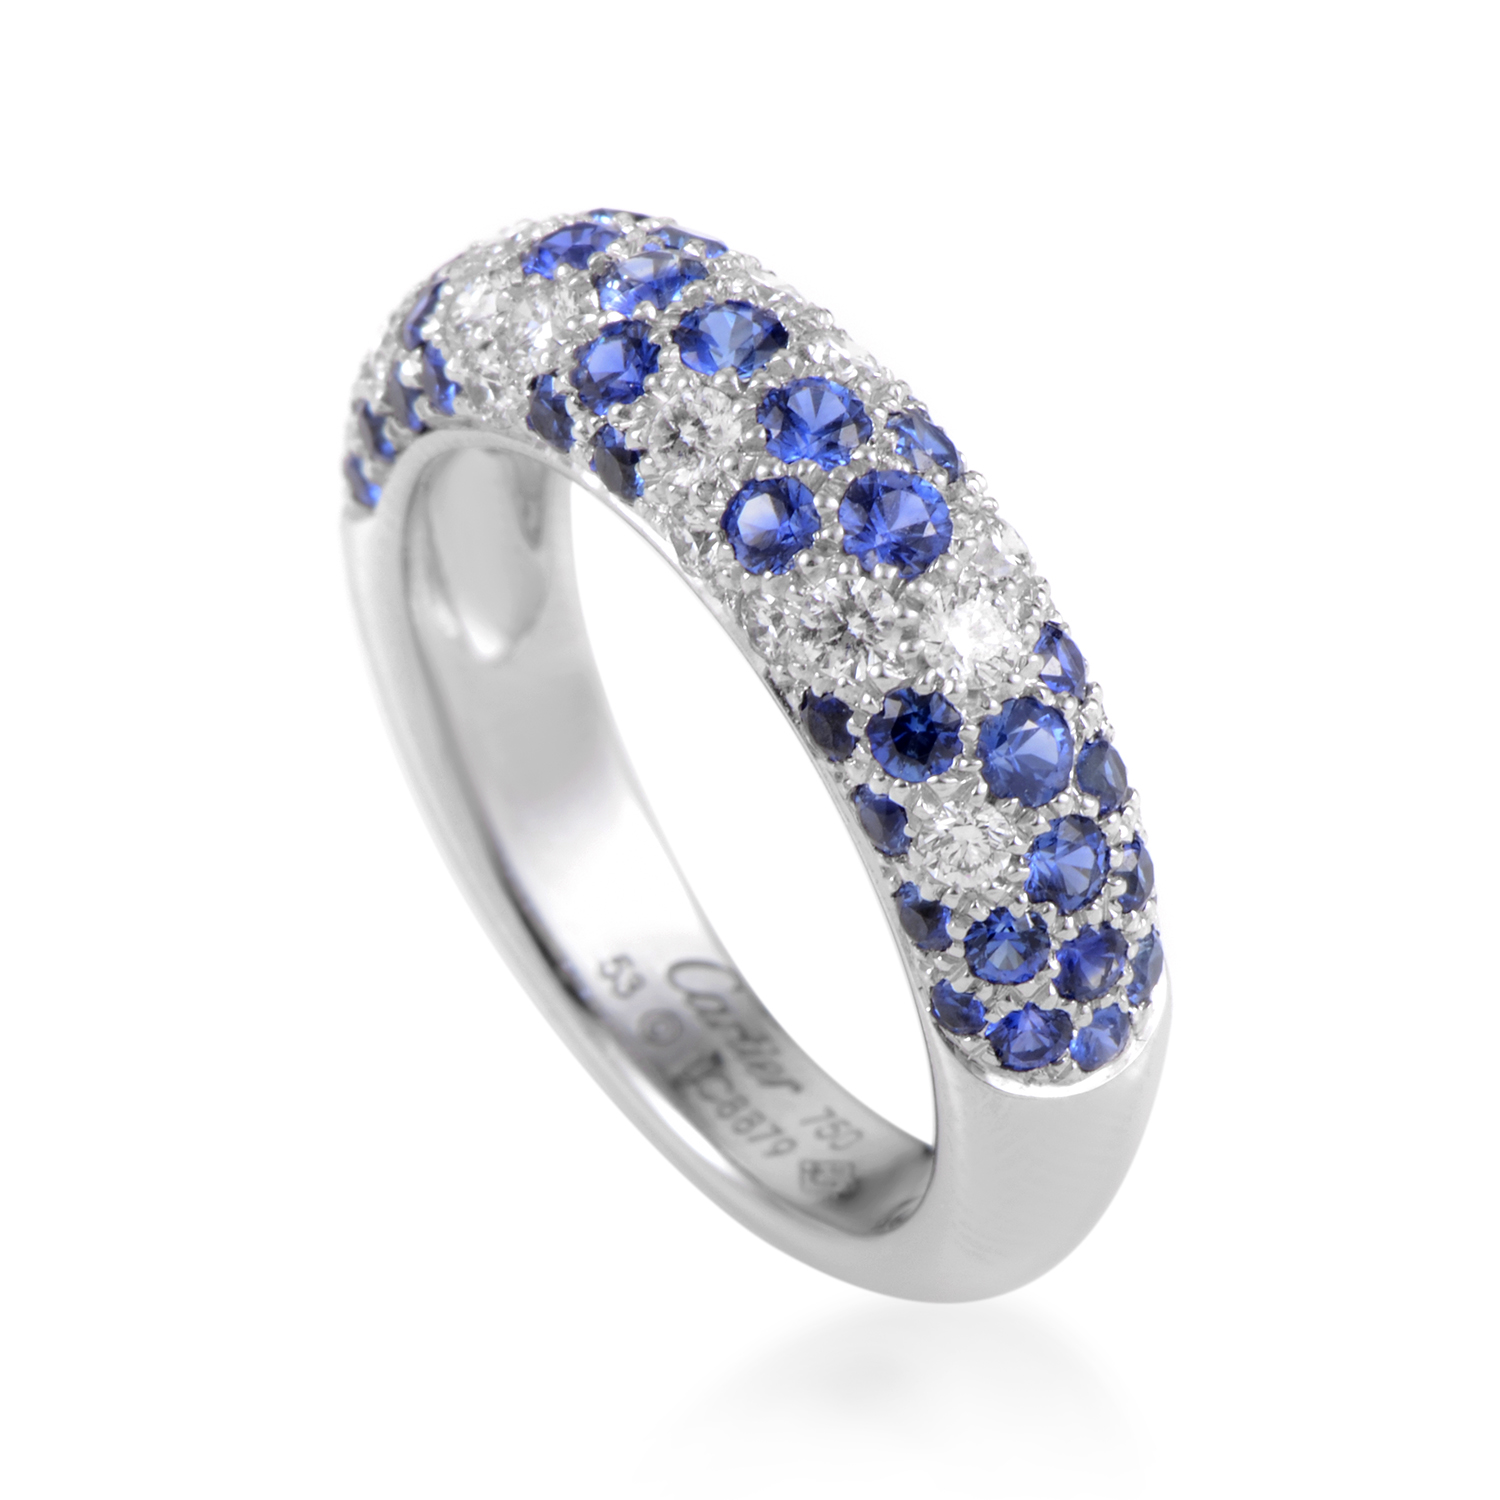 Cartier Women's 18K White Gold Diamond & Sapphire Partial Pave Band Ring